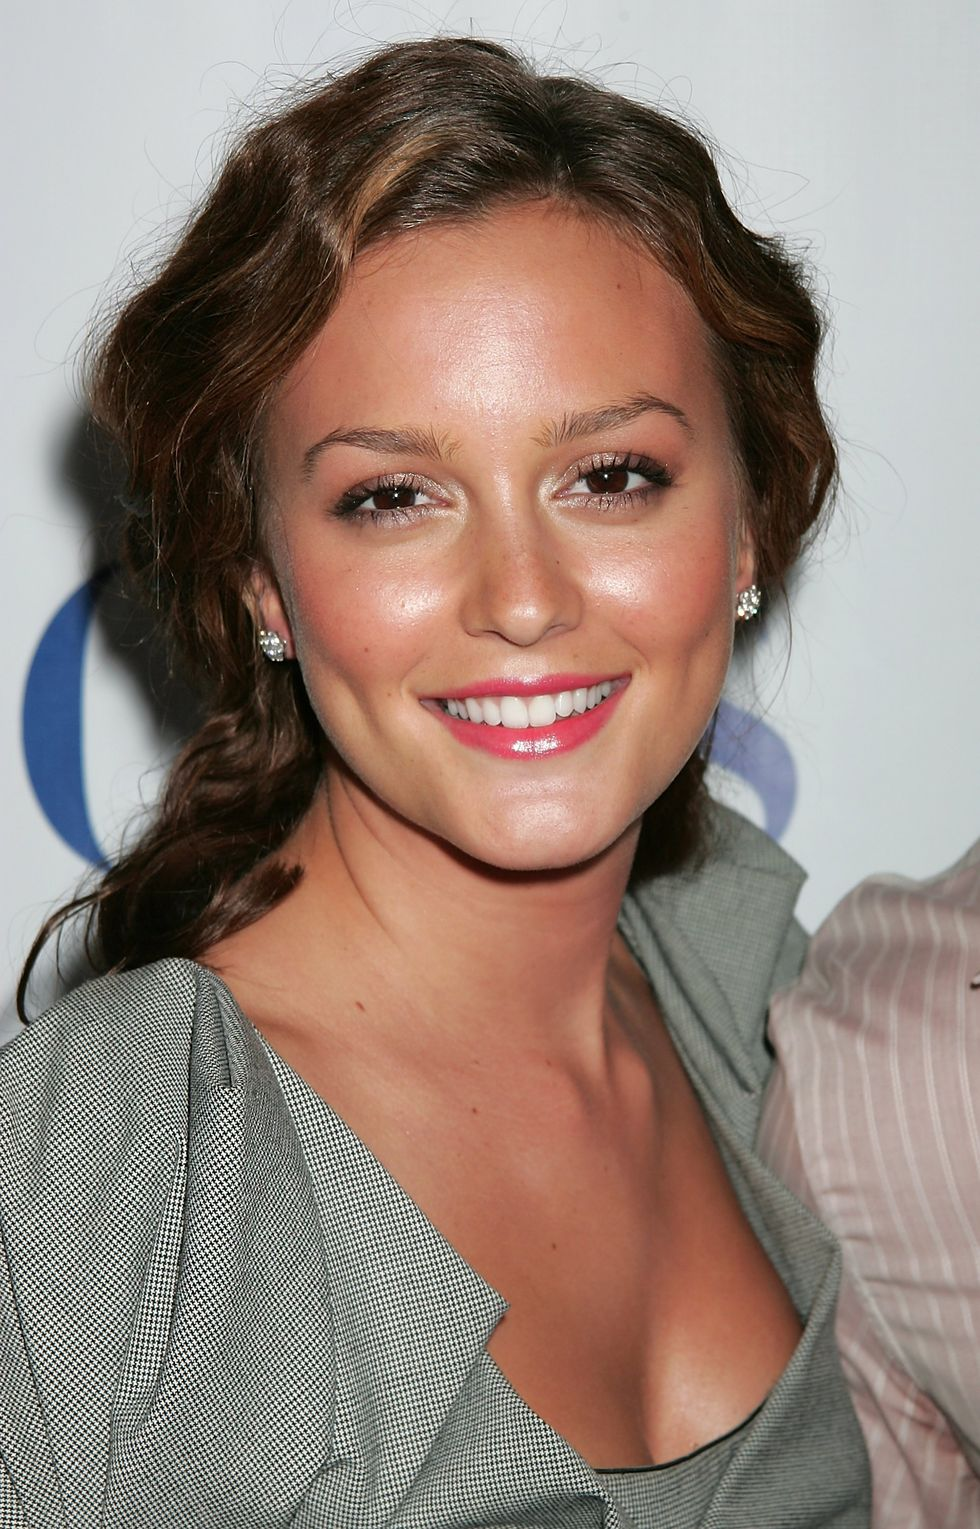 leighton-meeste-cbs-cw-and-showtime-press-tour-party-in-los-angeles-01